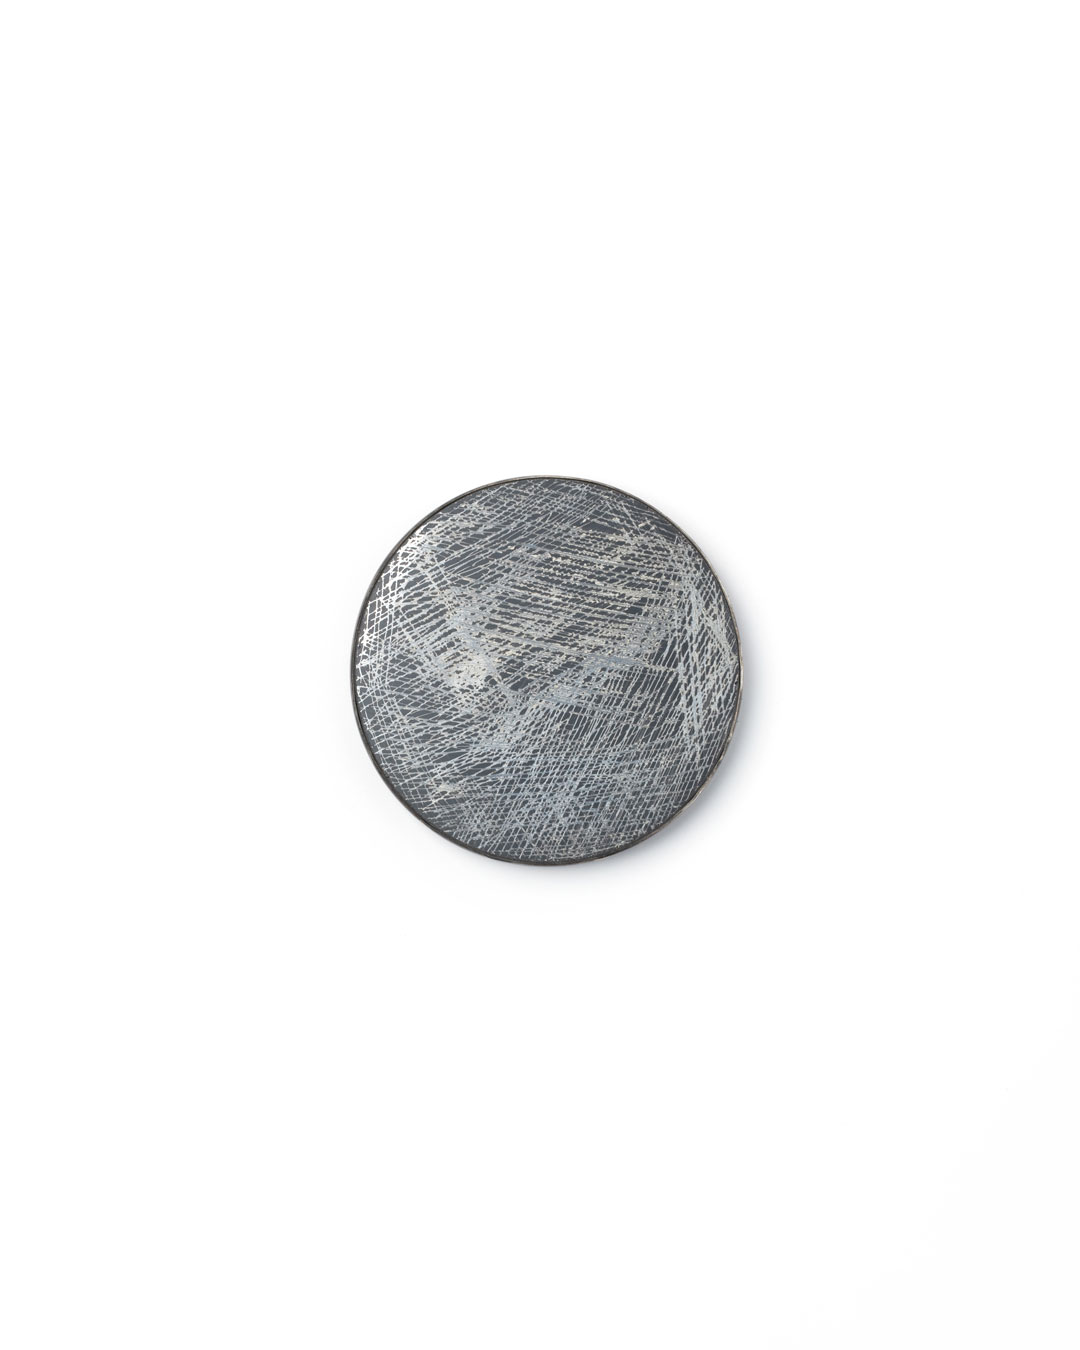 Florian Weichsberger, Moon #9, 2019, brooch; glass mirror, silver, steel, 85 x 85 x 10 mm, €970